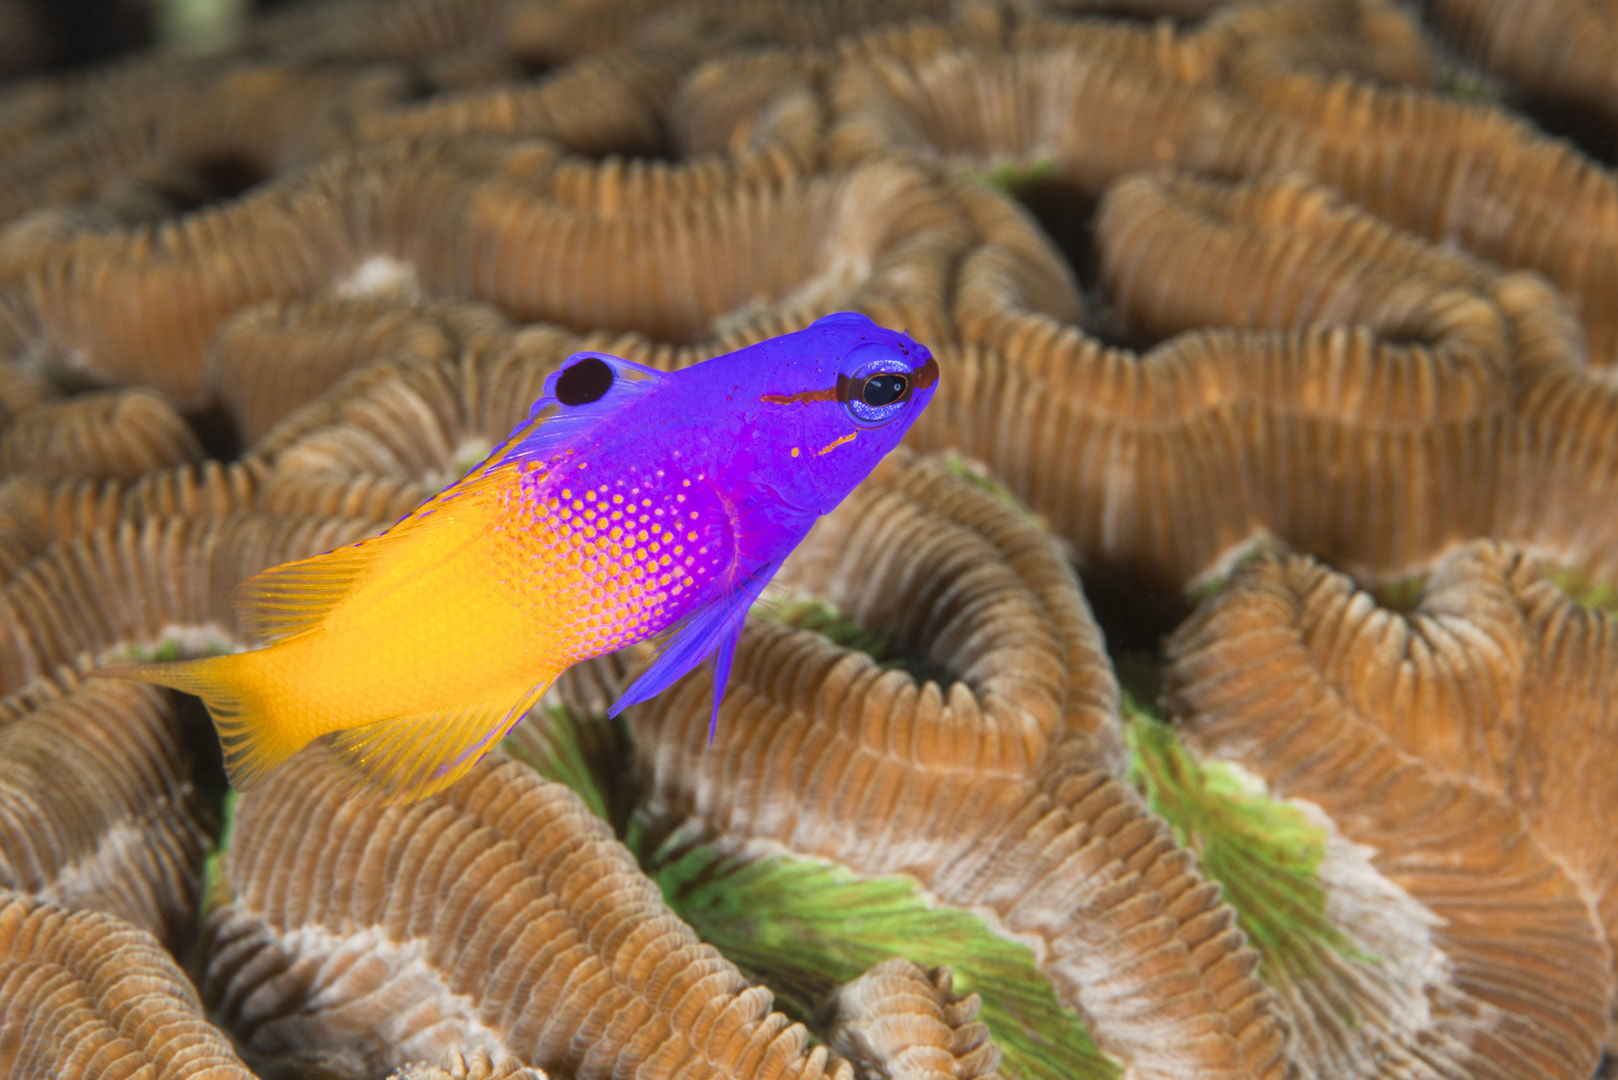 The striking purple and yellow coloration of this fairy basslet are among the many interesting residents you will see on the reefs in Guadeloupe